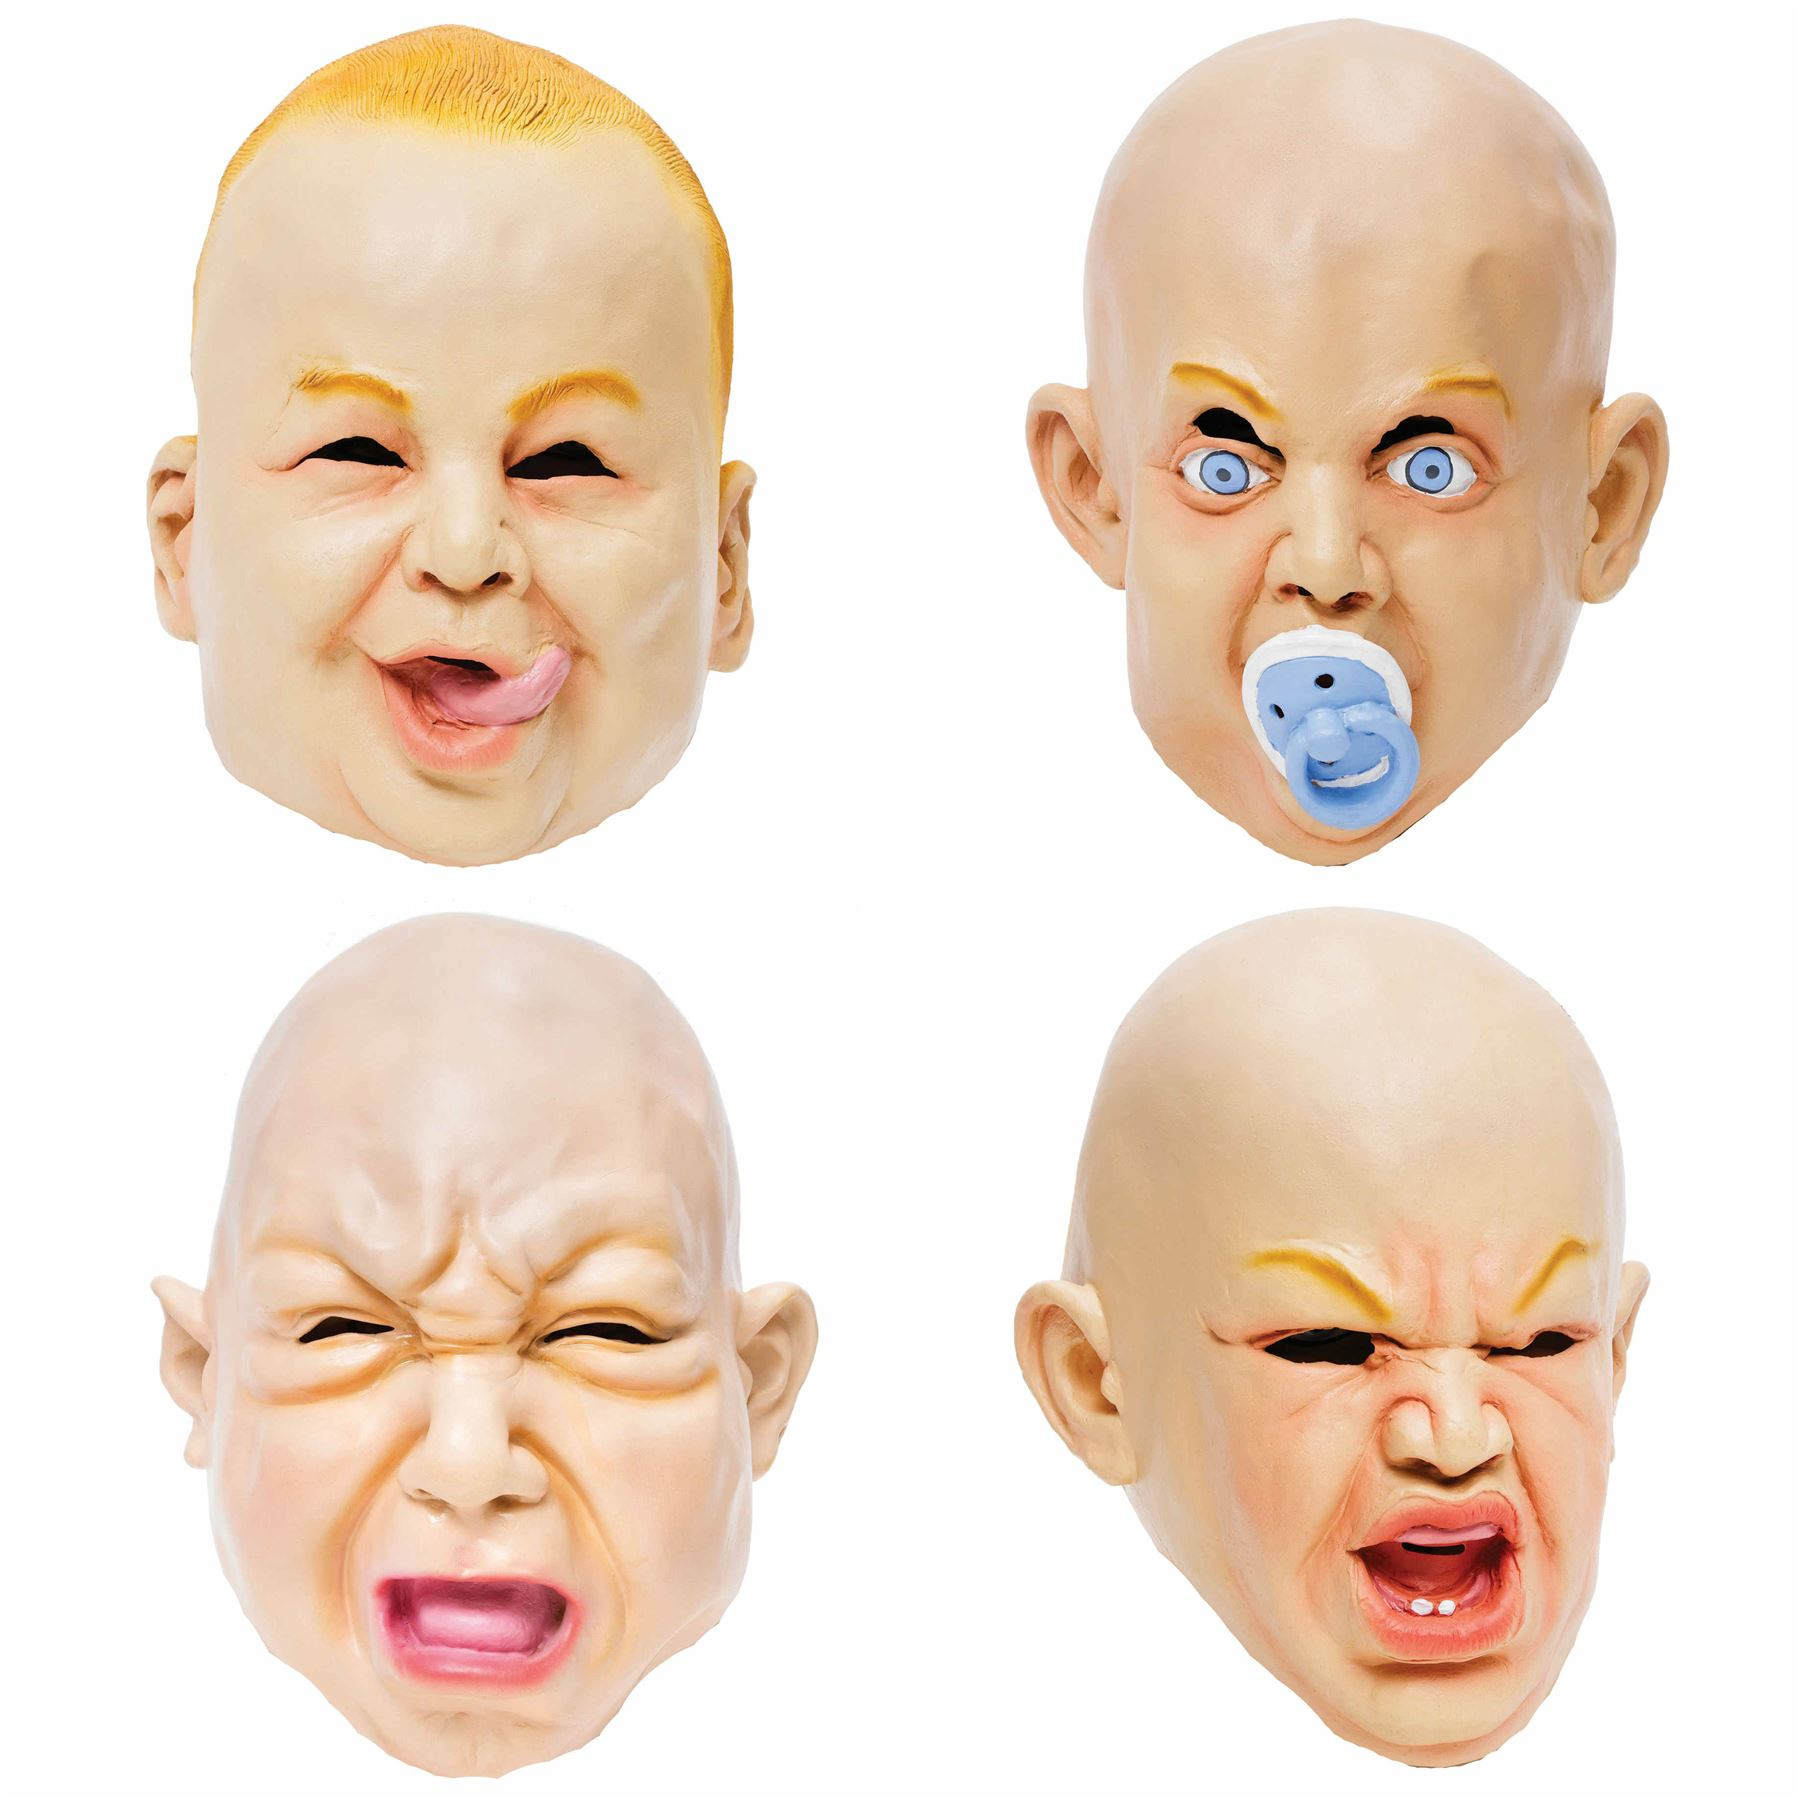 Details about Adult Rubber Overhead Scary Funny Baby Mask Fancy Dress  Halloween Stag Freshers